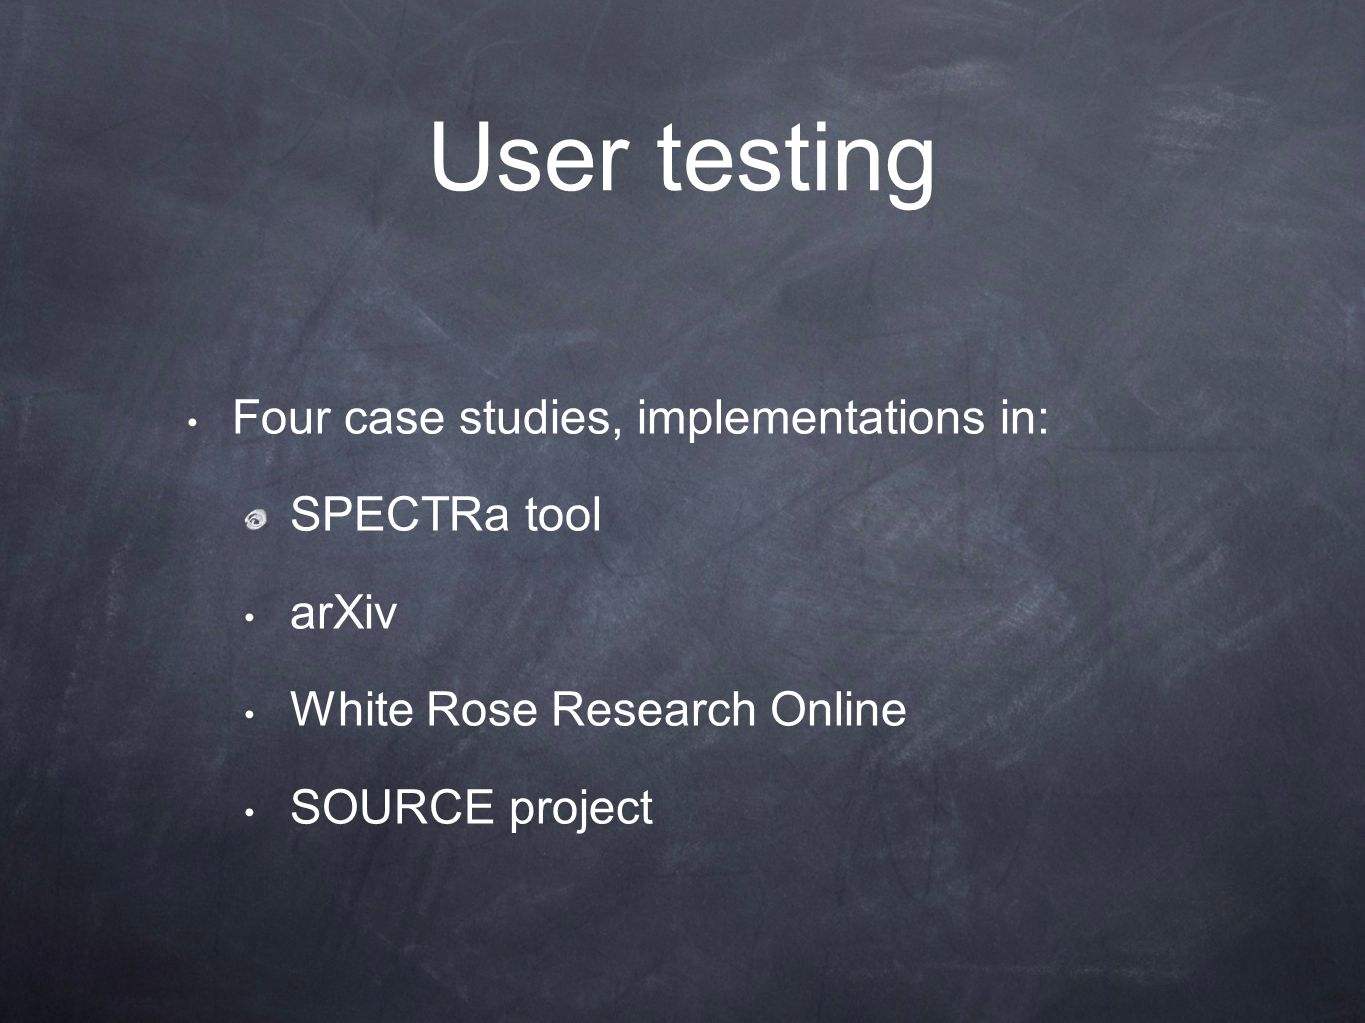 User testing Four case studies, implementations in: SPECTRa tool arXiv White Rose Research Online SOURCE project